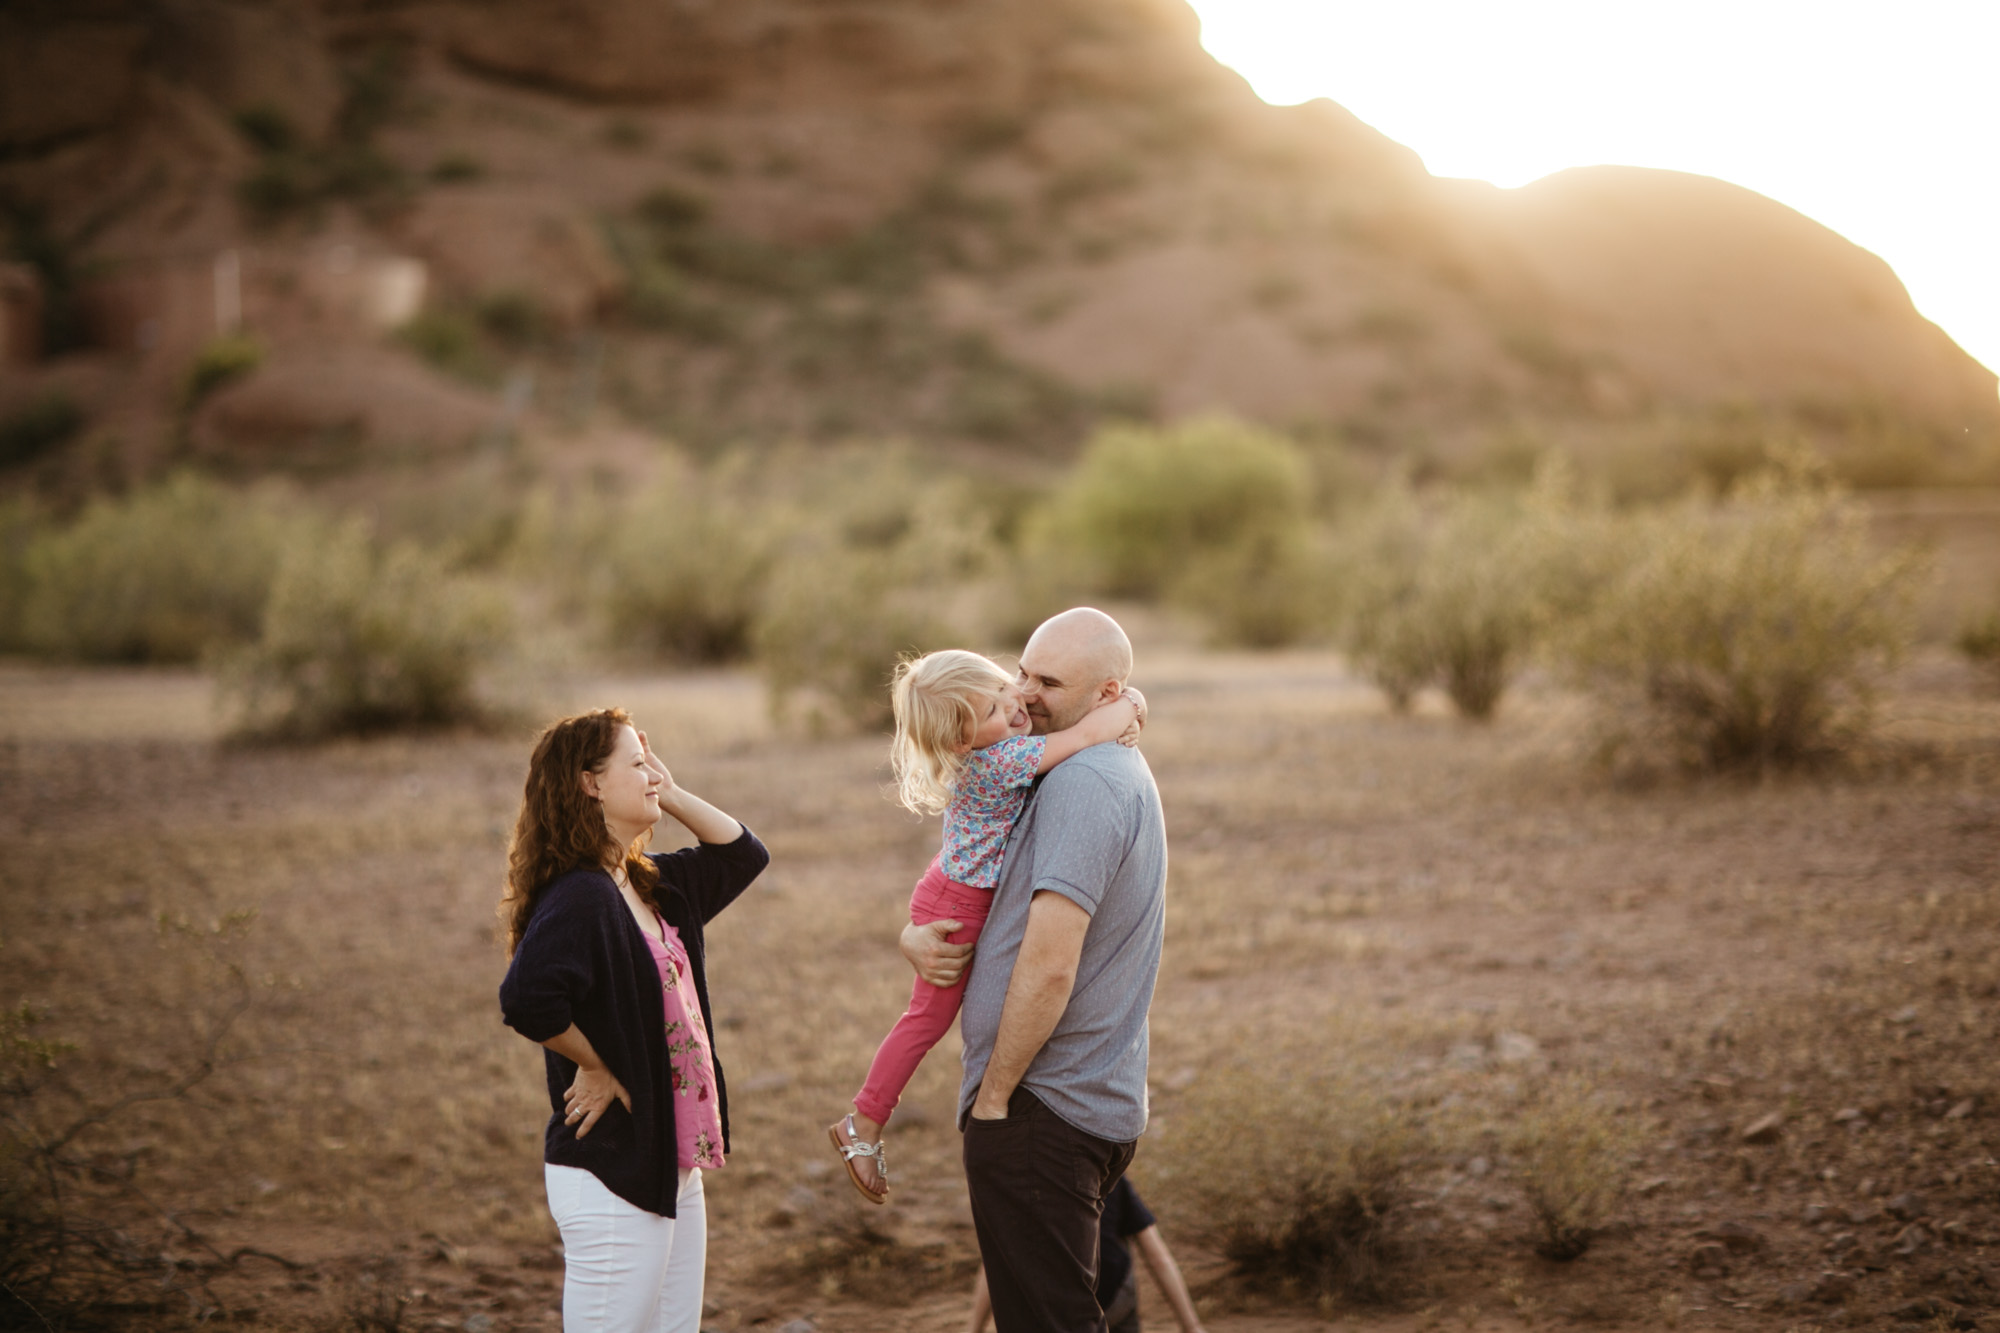 scottsdale-family-lifestyle-photographer-26.jpg